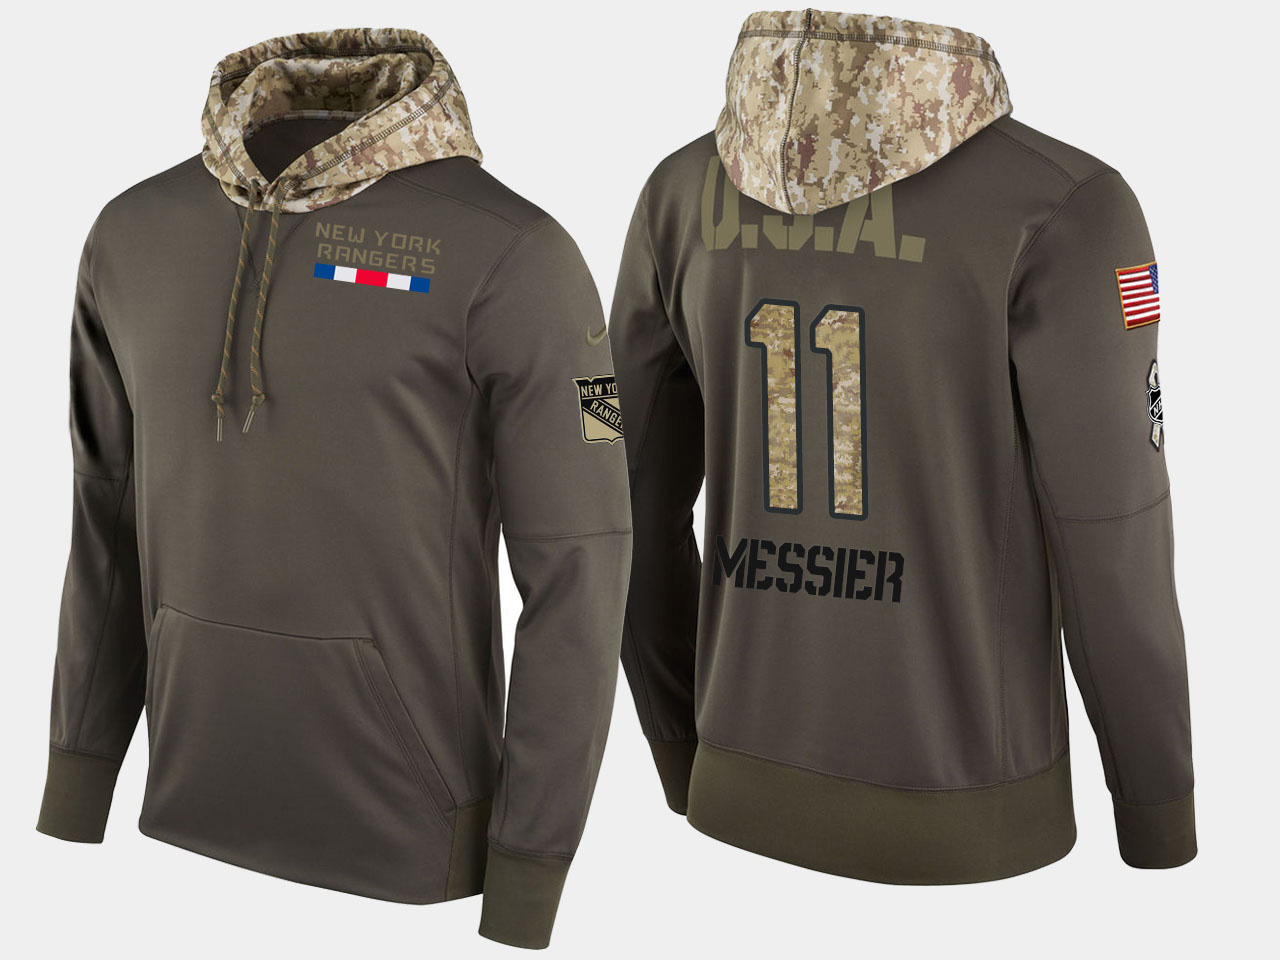 Nike Rangers 11 Mark Messier Retired Olive Salute To Service Pullover Hoodie